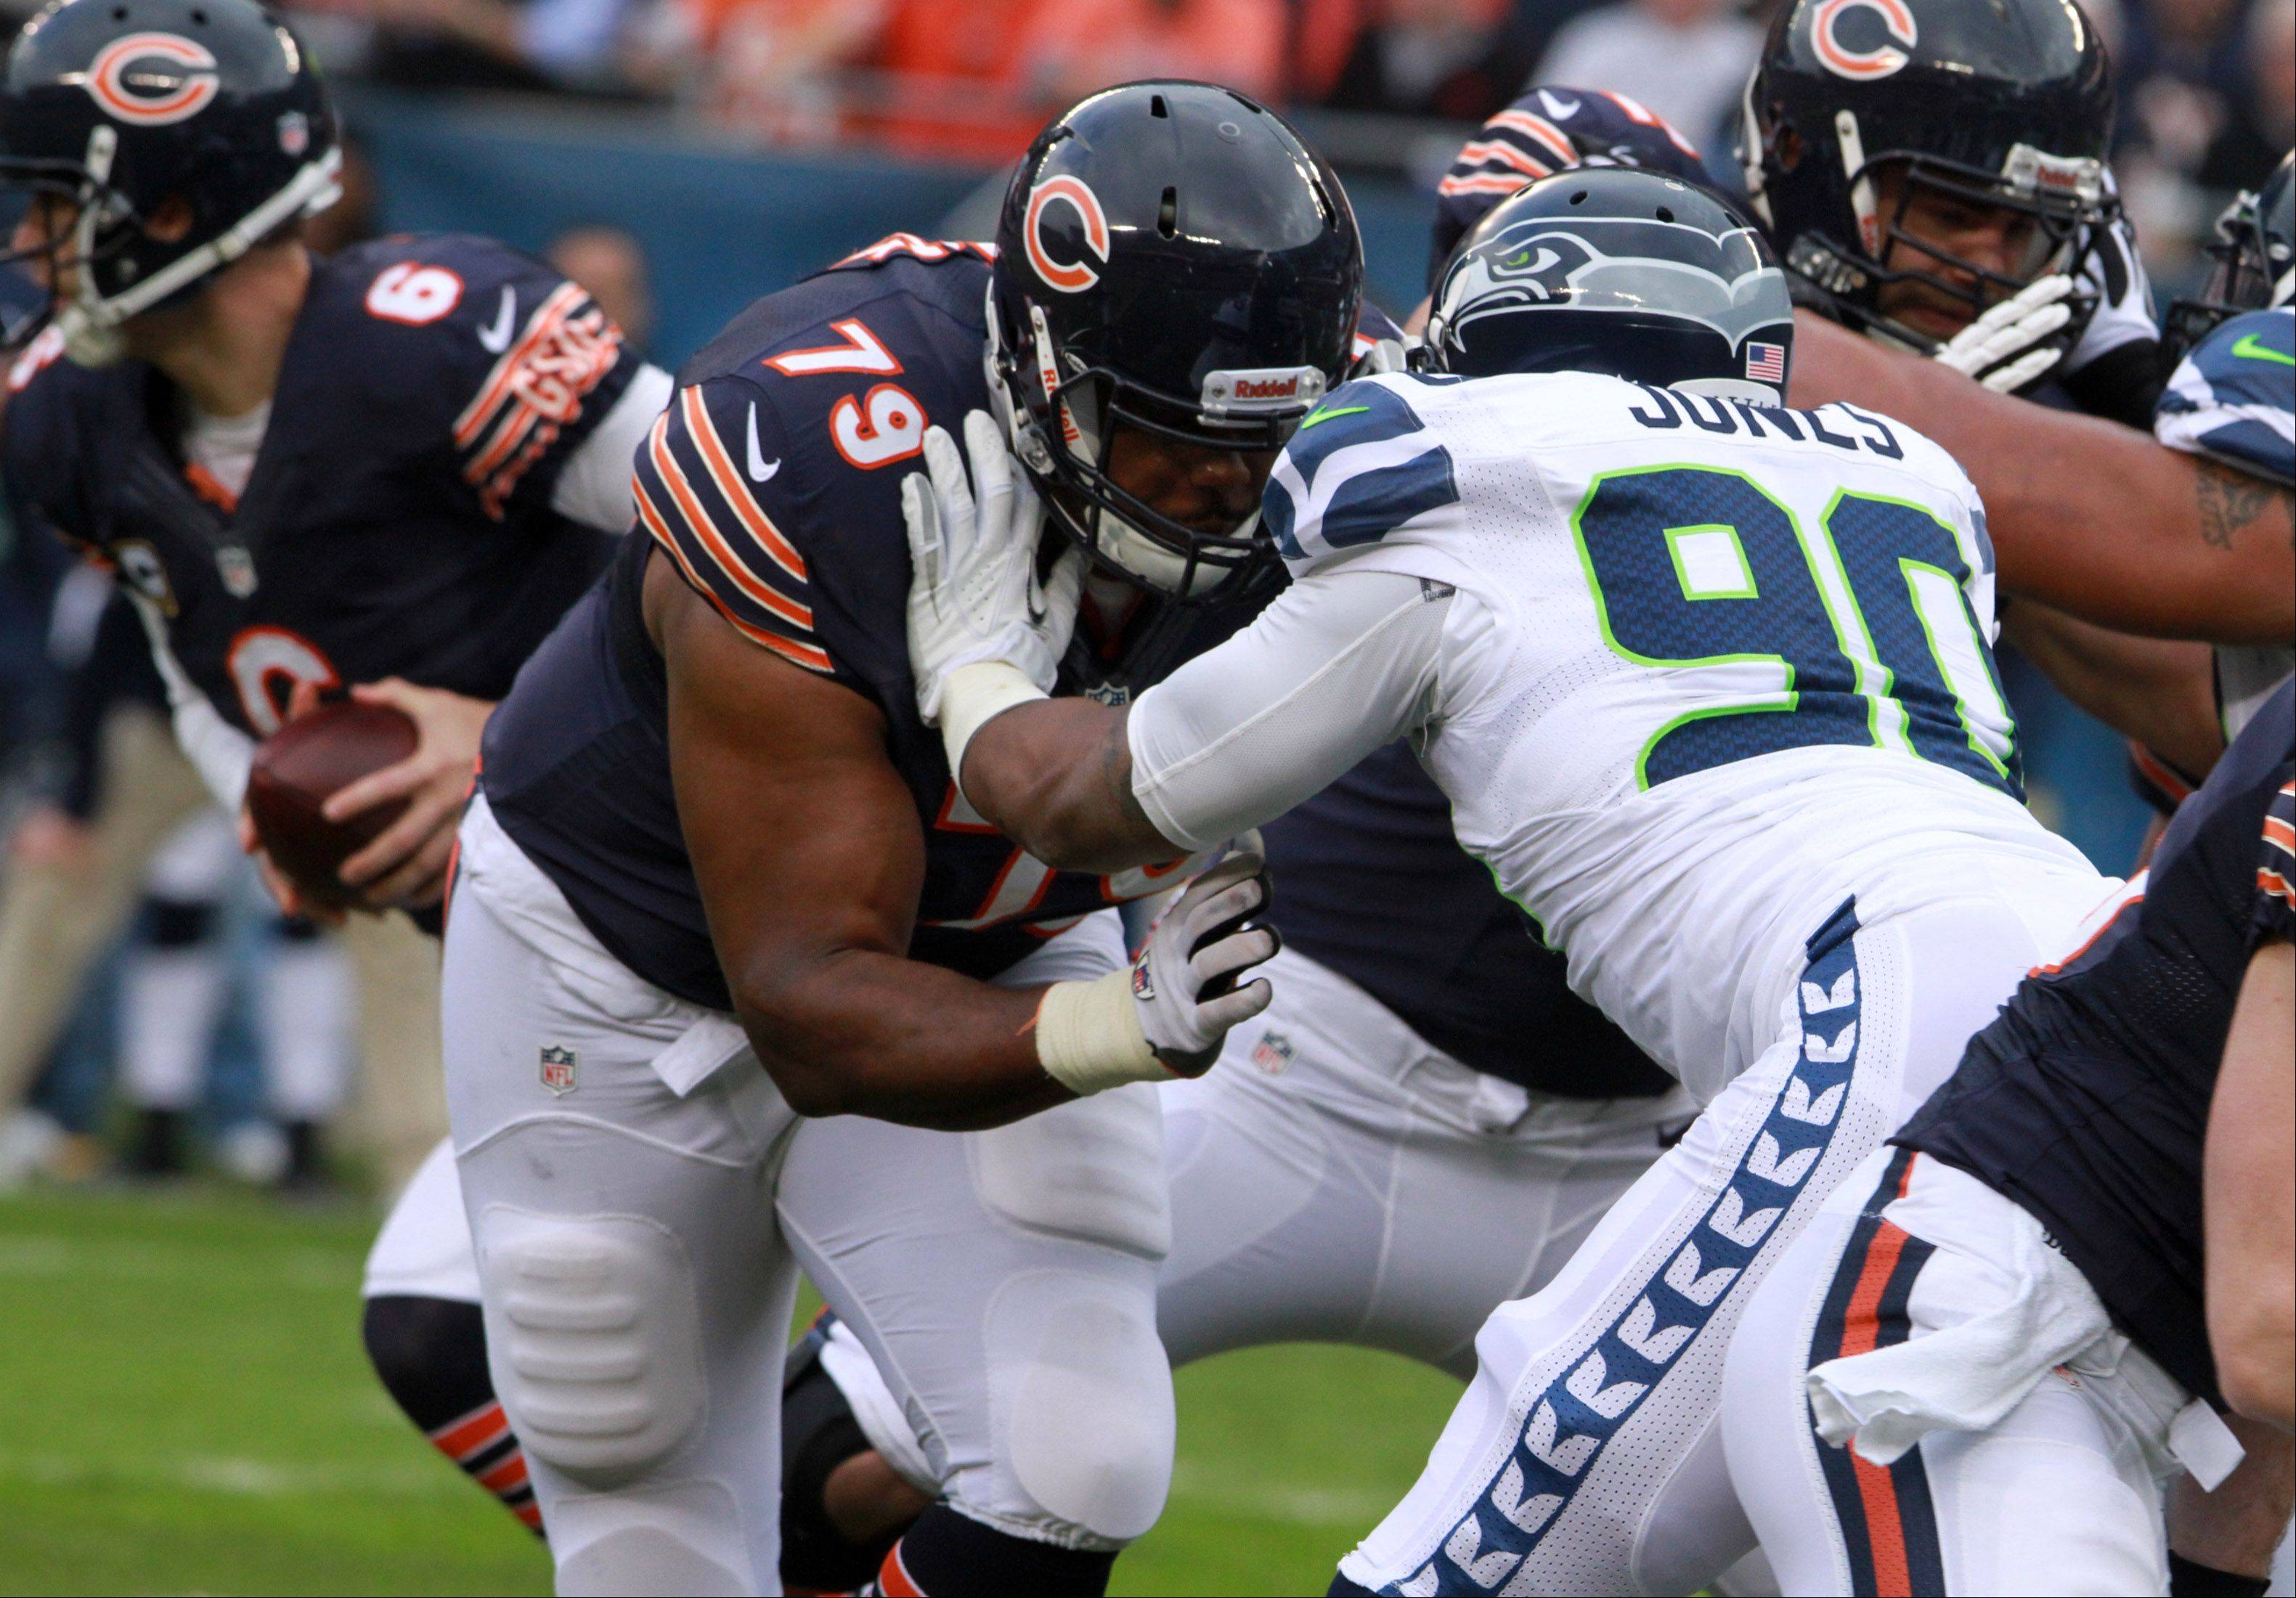 Chicago Bears tackle Jonathan Scott, here blocking blocks Seattle Seahawks defensive end Jason Jones, has signed a one-year deal to return to the Bears.